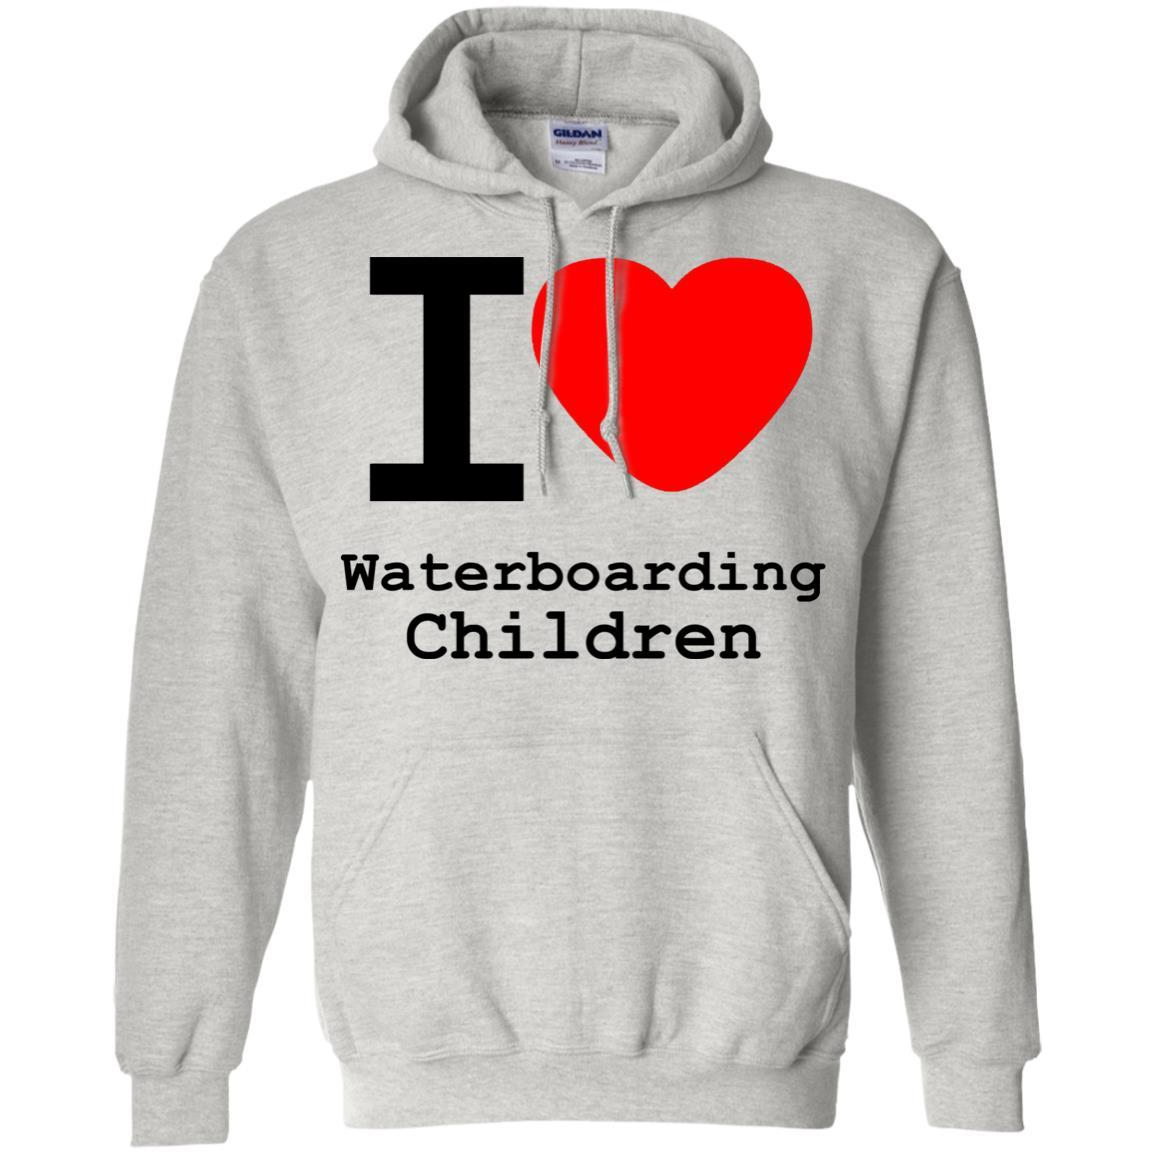 I love Waterboarding Children - Pullover Hoodie Ash / 5XL